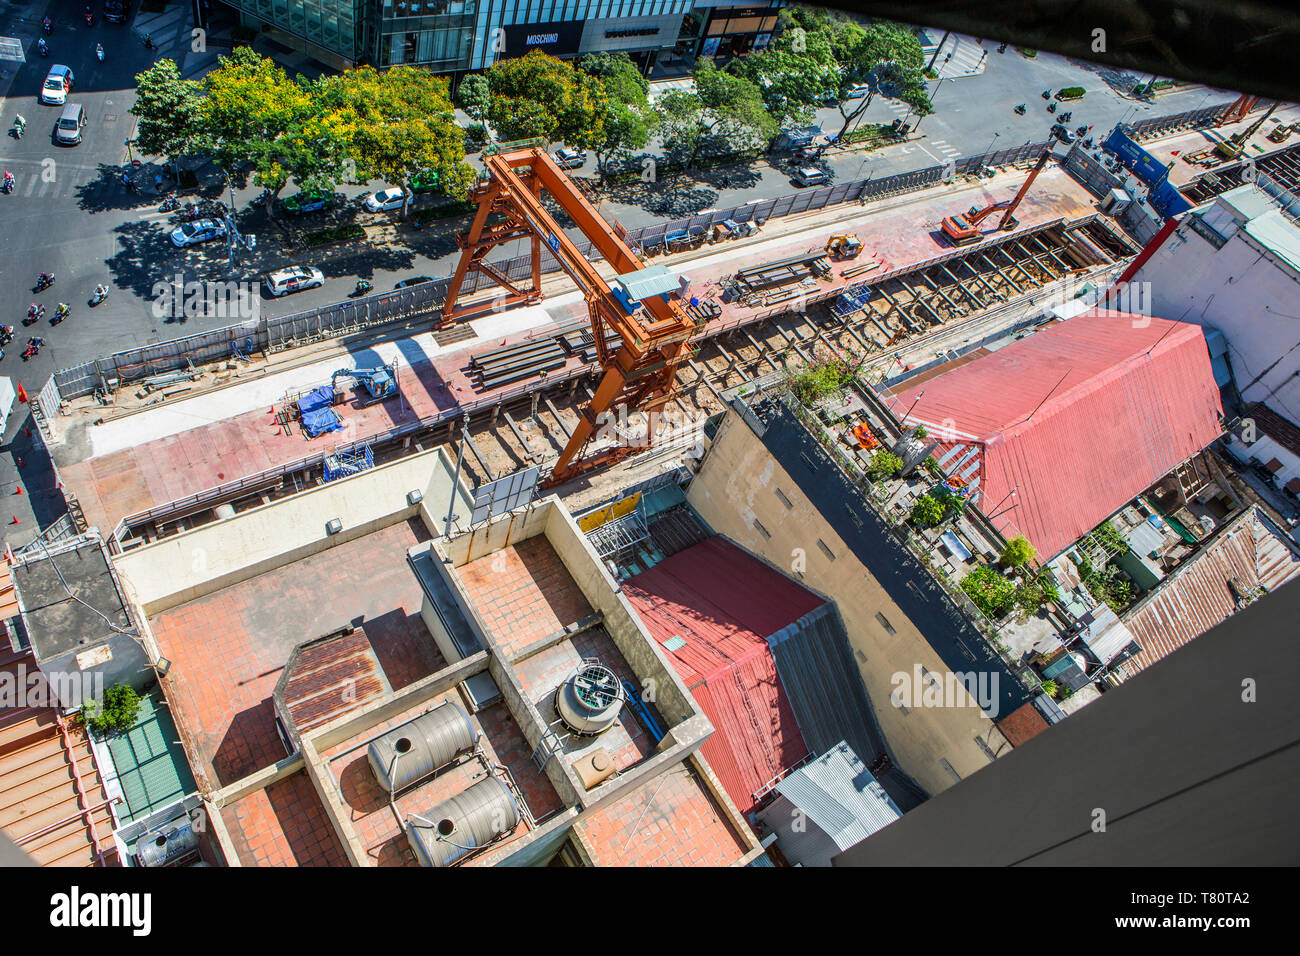 Construction of the new underground railway in Ho Chi Minh City, Vietnam. - Stock Image